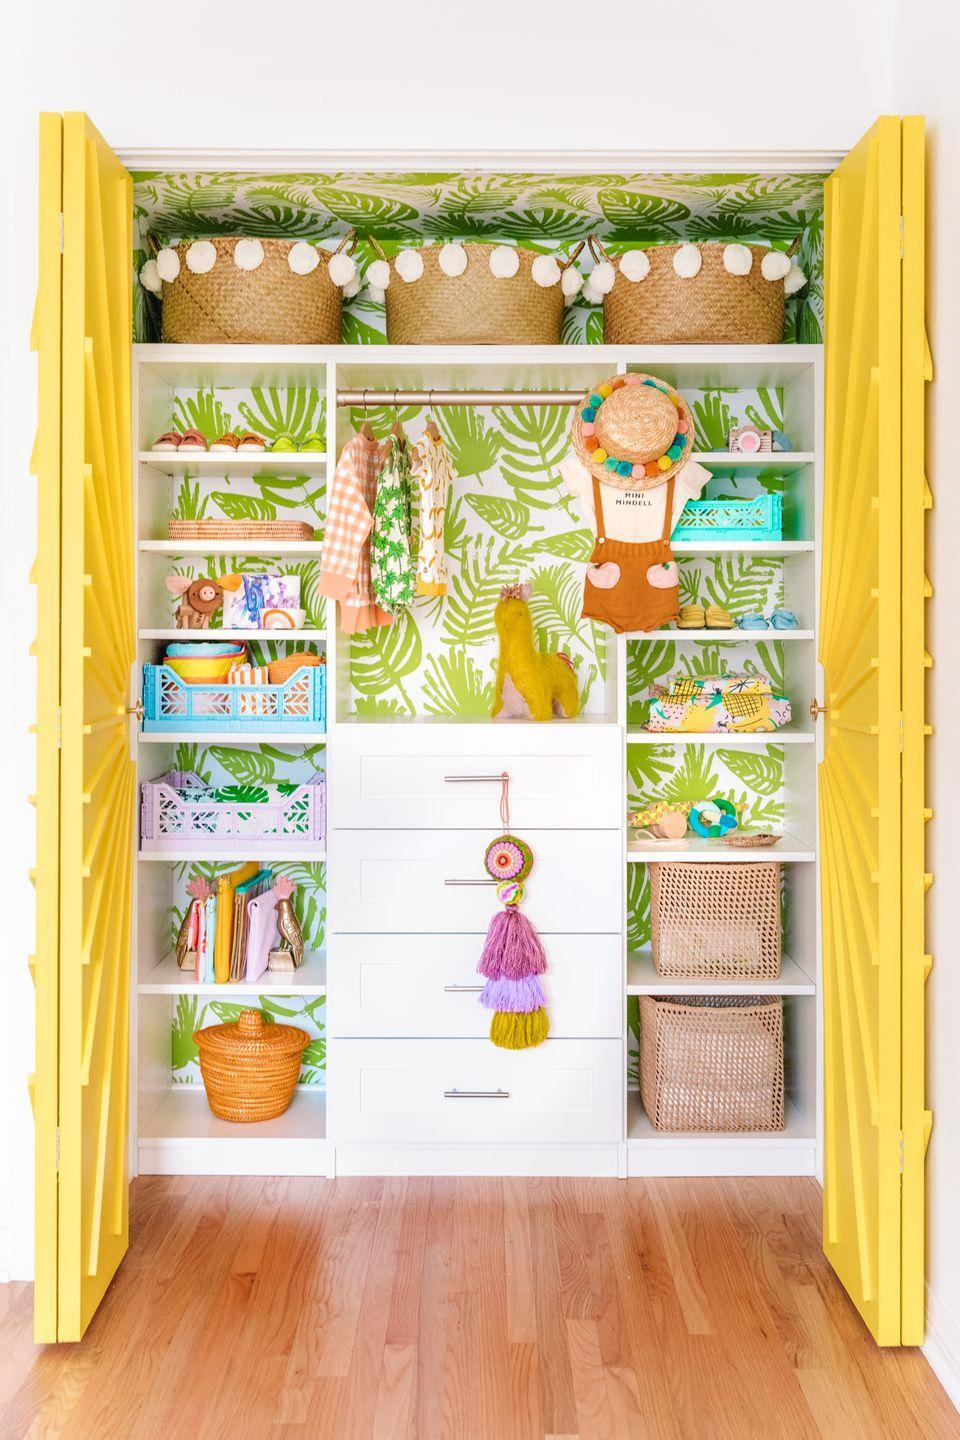 "<p>Kelly Mindel from <a href=""https://studiodiy.com/the-mindwelling-colorful-nursery-closet-reveal/"" rel=""nofollow noopener"" target=""_blank"" data-ylk=""slk:Studio DIY"" class=""link rapid-noclick-resp"">Studio DIY</a> papered the inside of her son's closet with a <a href=""https://www.chasingpaper.com/wallpaper/palms/"" rel=""nofollow noopener"" target=""_blank"" data-ylk=""slk:palm print"" class=""link rapid-noclick-resp"">palm print</a> by Chasing Paper. A closet is the perfect place to try out a bold pattern because it's not always in view—so don't be afraid to go big! </p>"